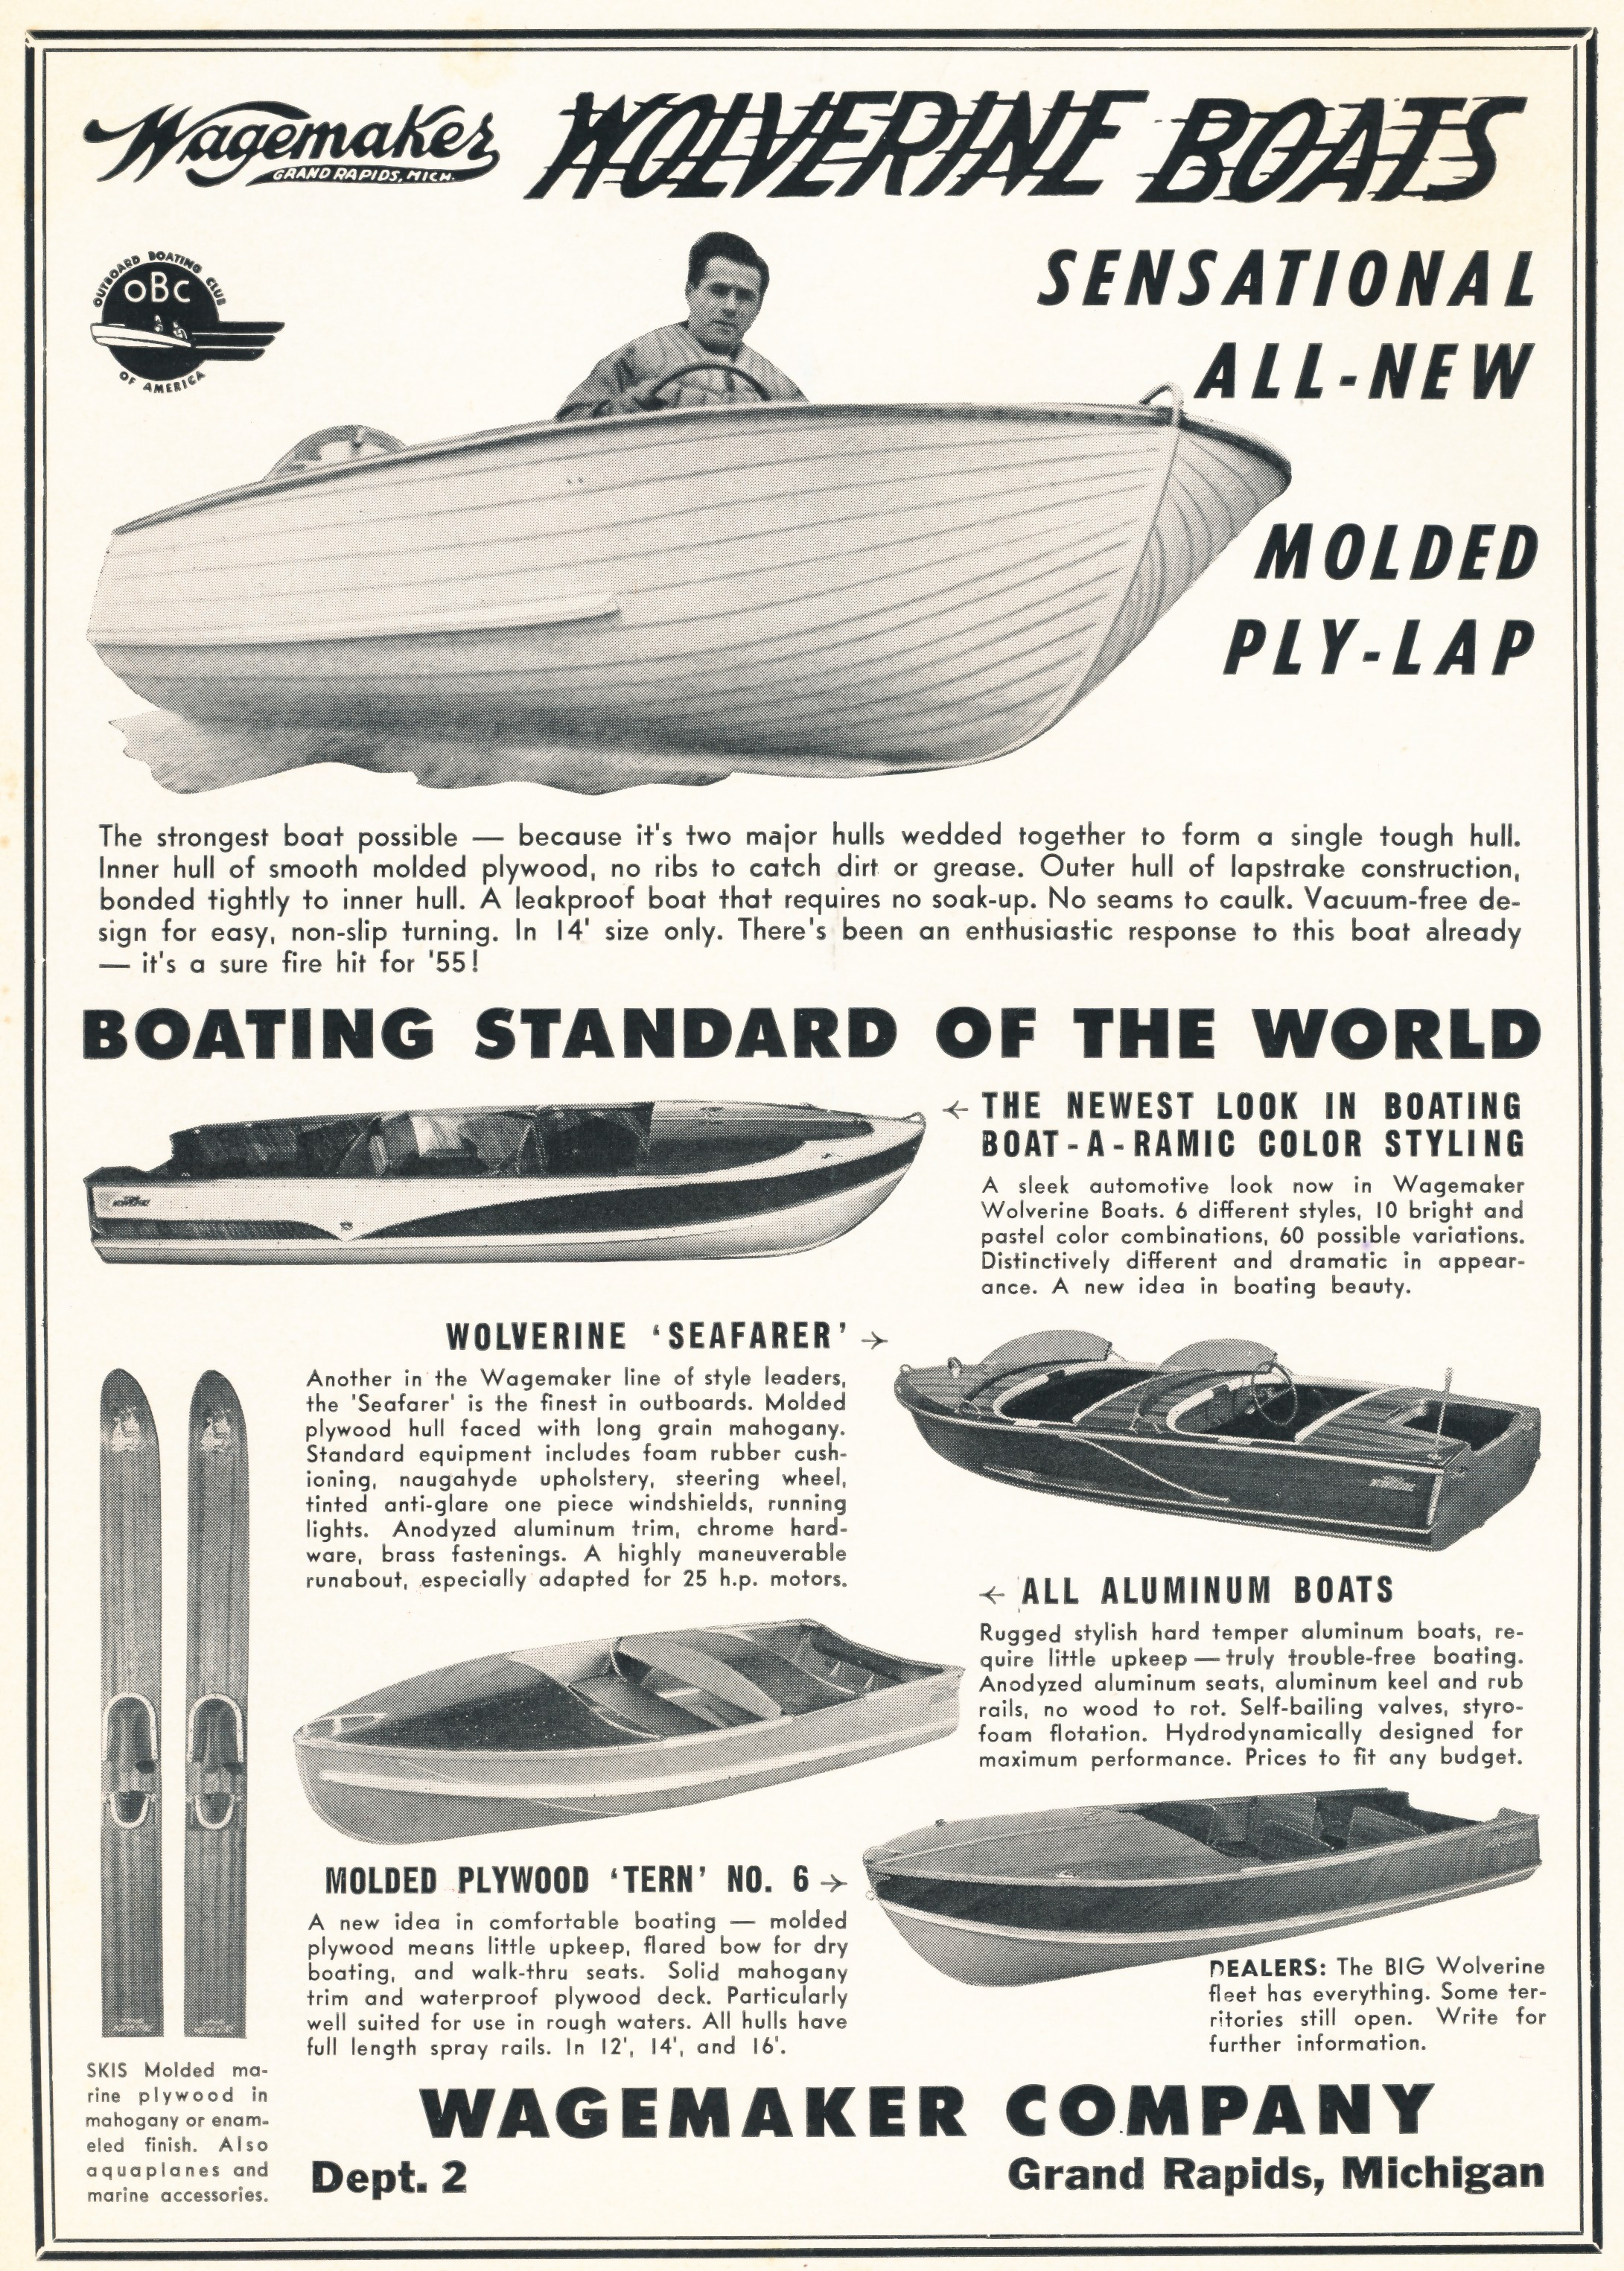 This is a 1954 wagemaker boats ad by wagemaker boat co and by lee wangstad below